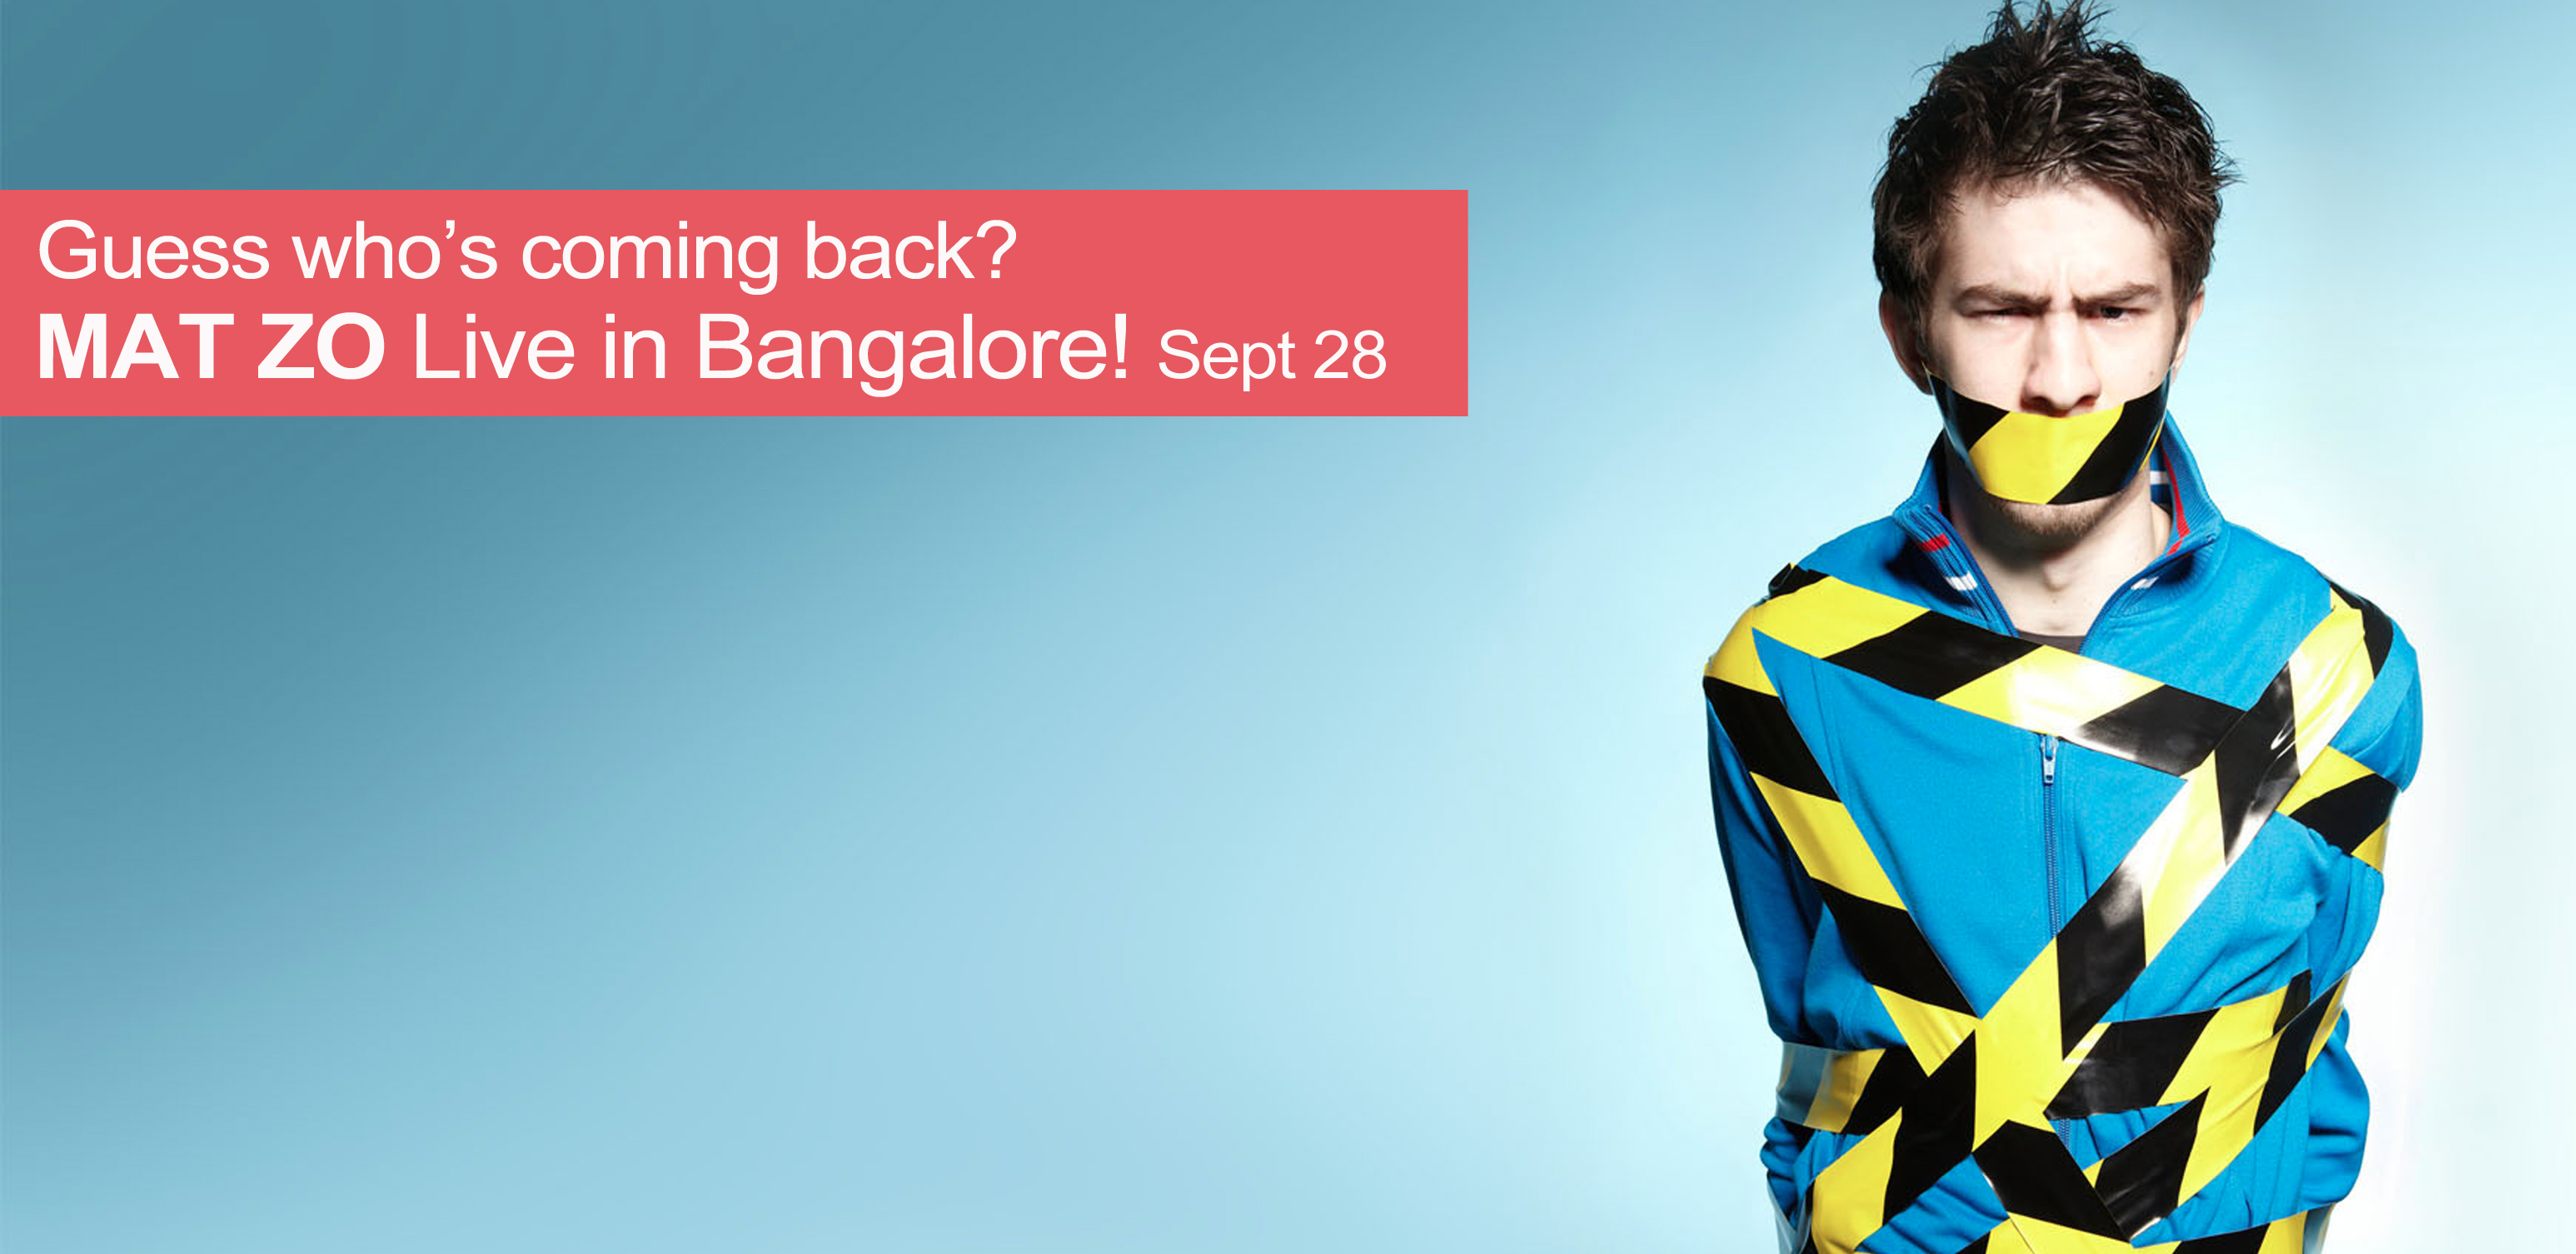 MAT ZO Live in Bangalore!